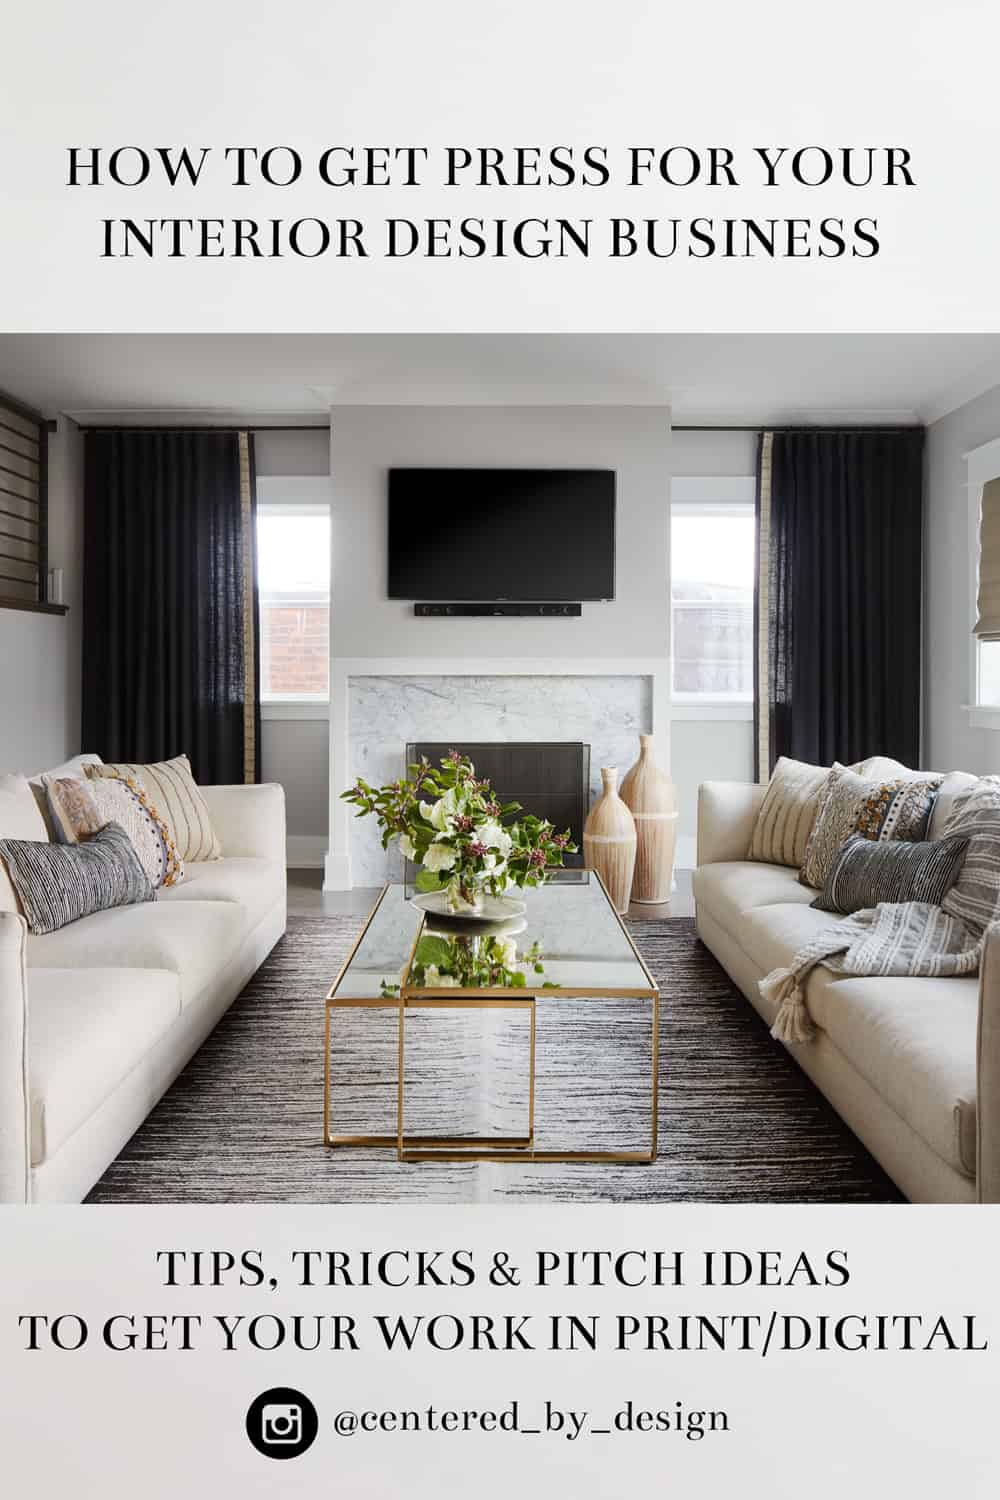 How To Pitch And Get Press For Your Interior Design Business